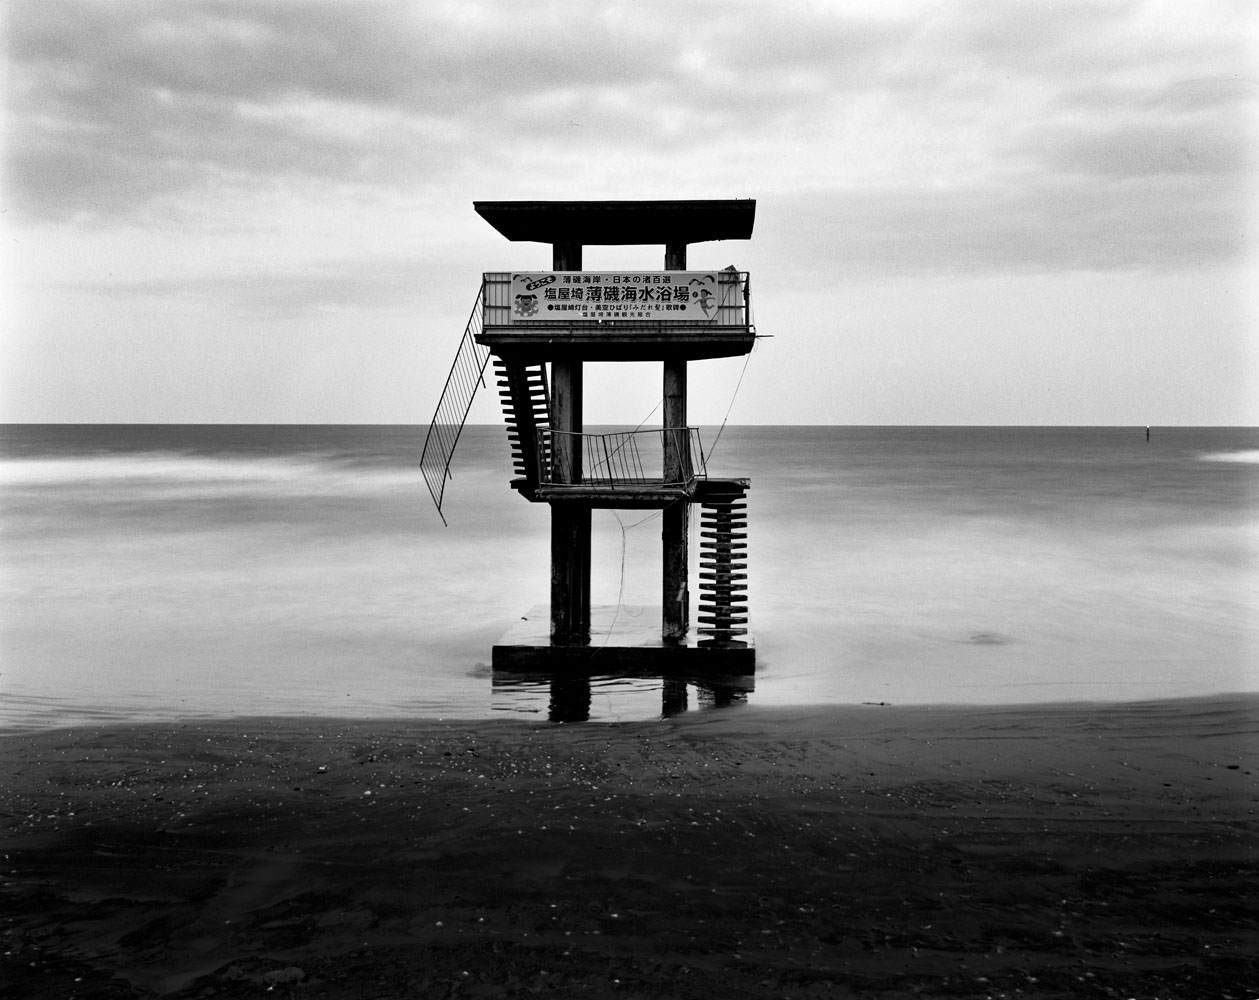 Destroyed observation post at a swimming beach in Iwaki city, some 40km south of the Fukushima Daiichi nuclear reactors. The sea water is now dangerously contaminated and people no longer swim at the beach.